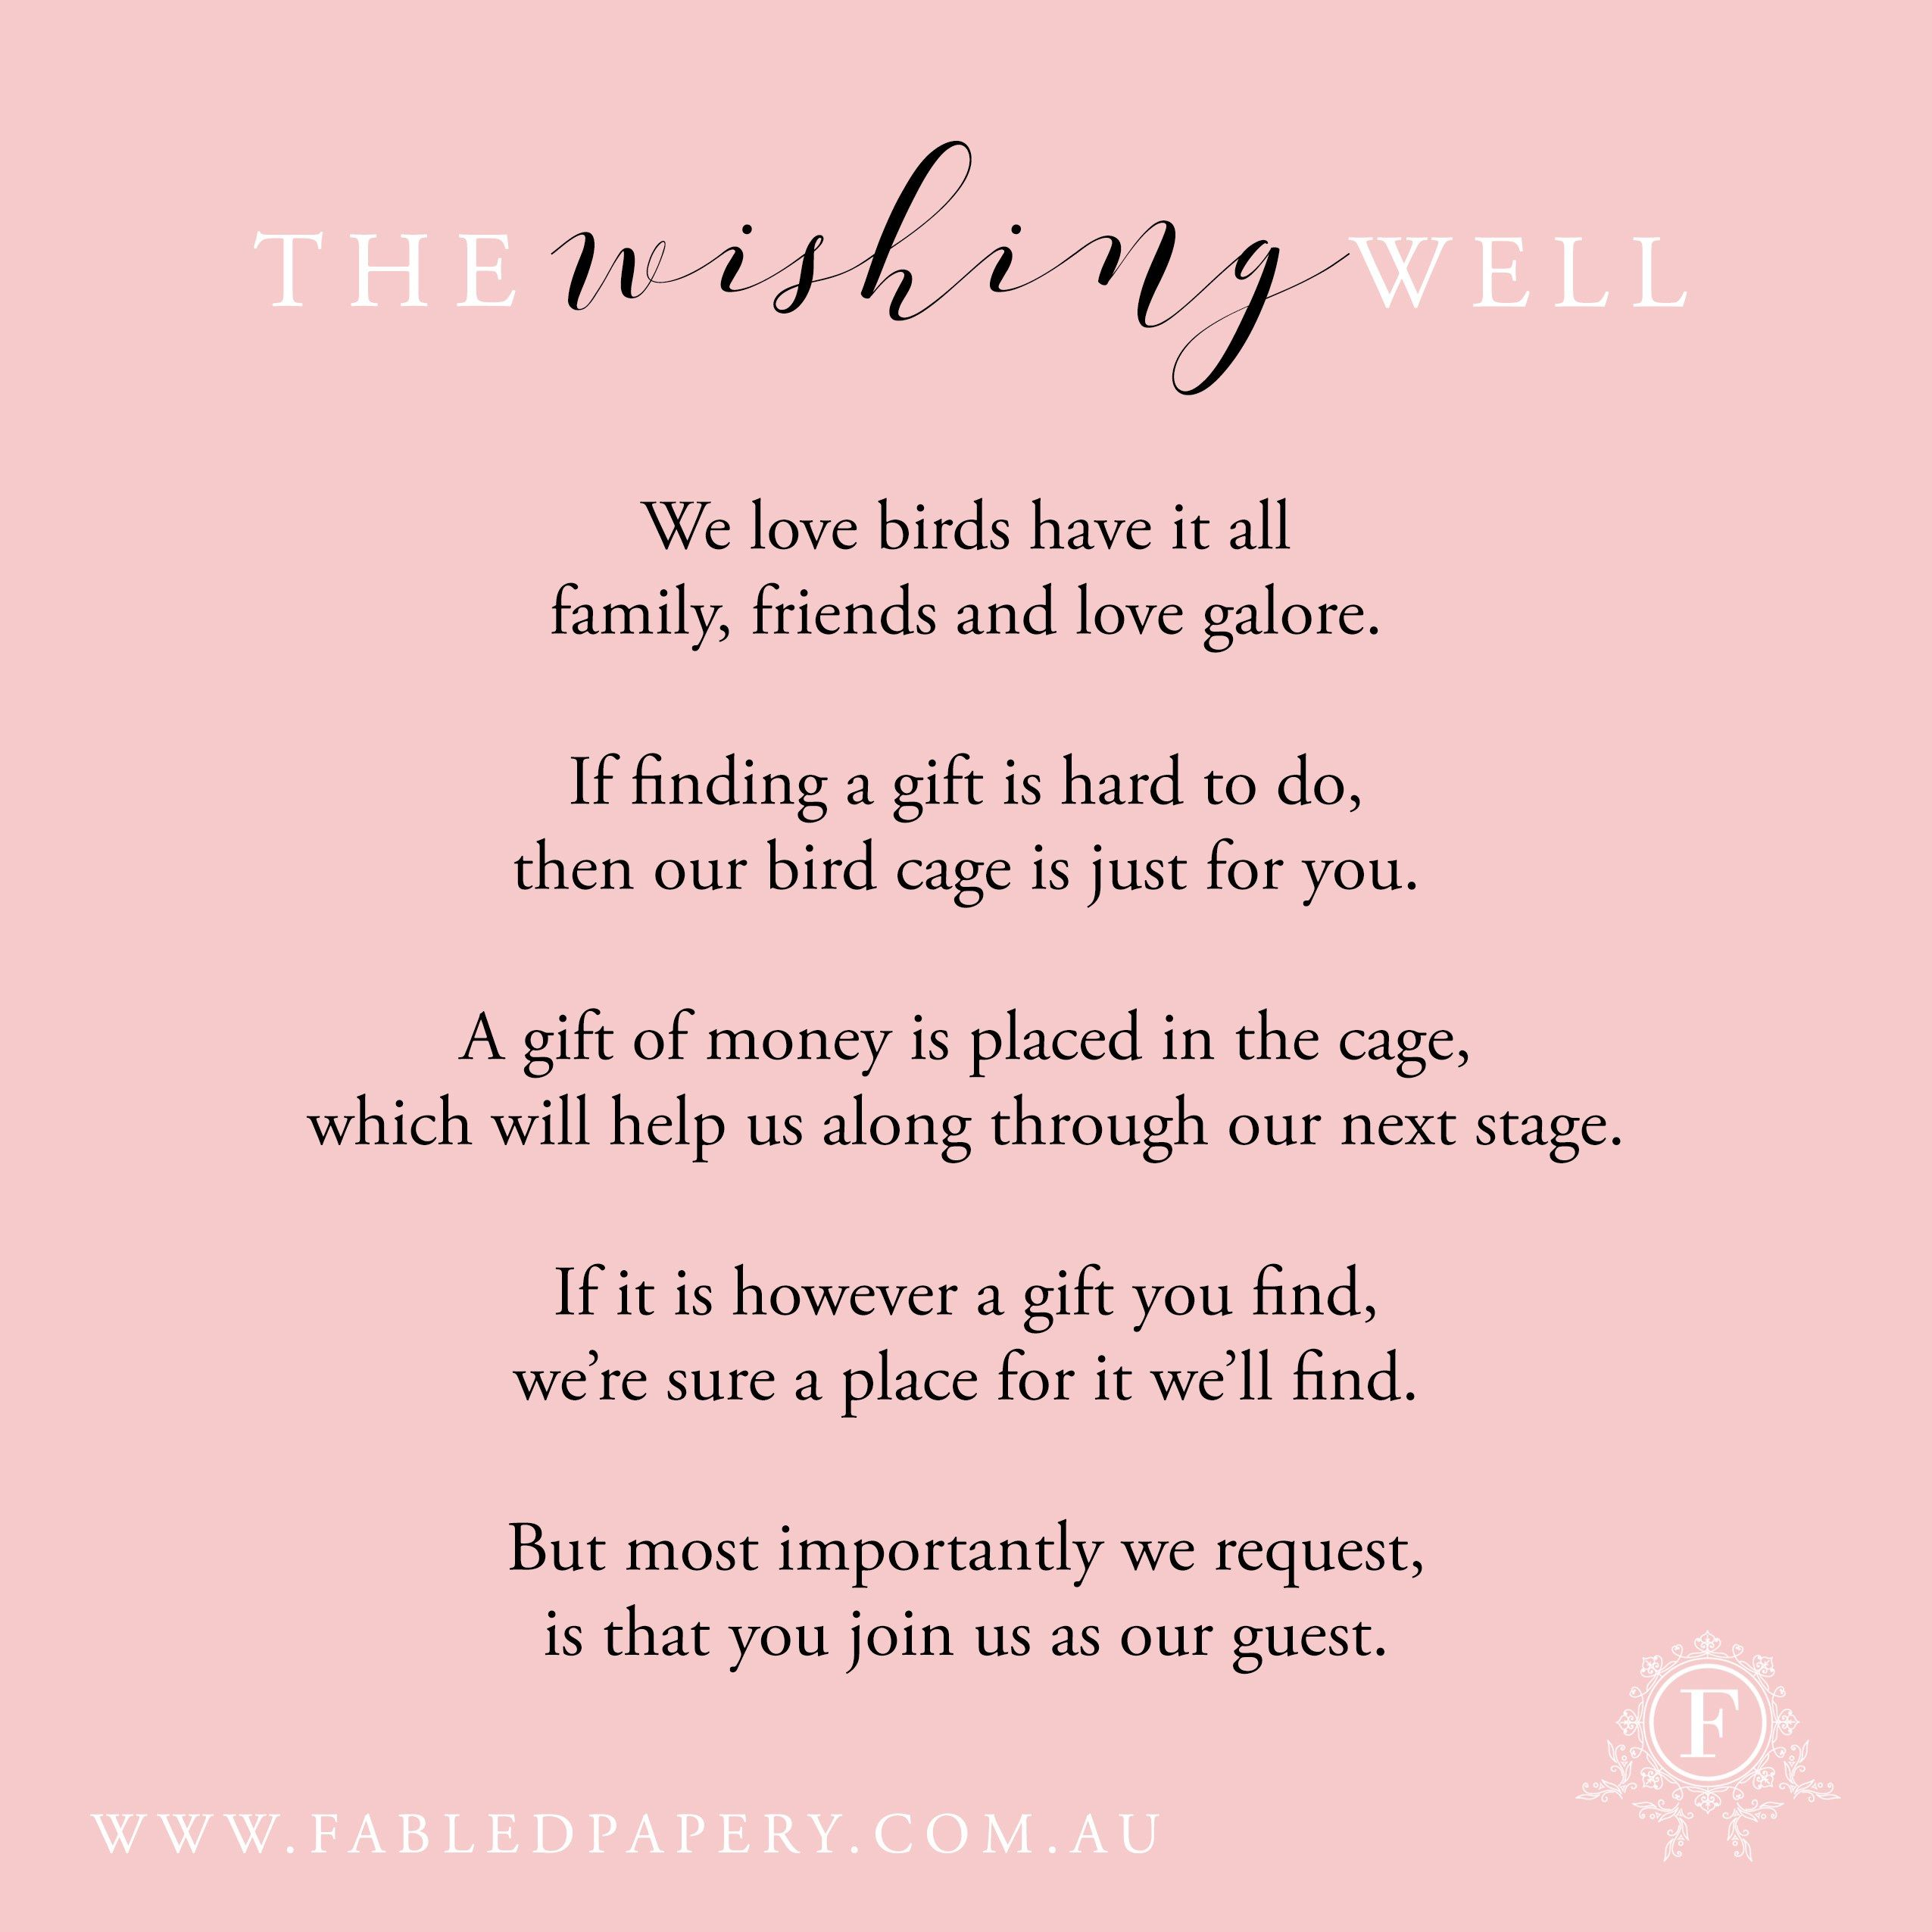 wishing well poems wedding ideas wedding wordings